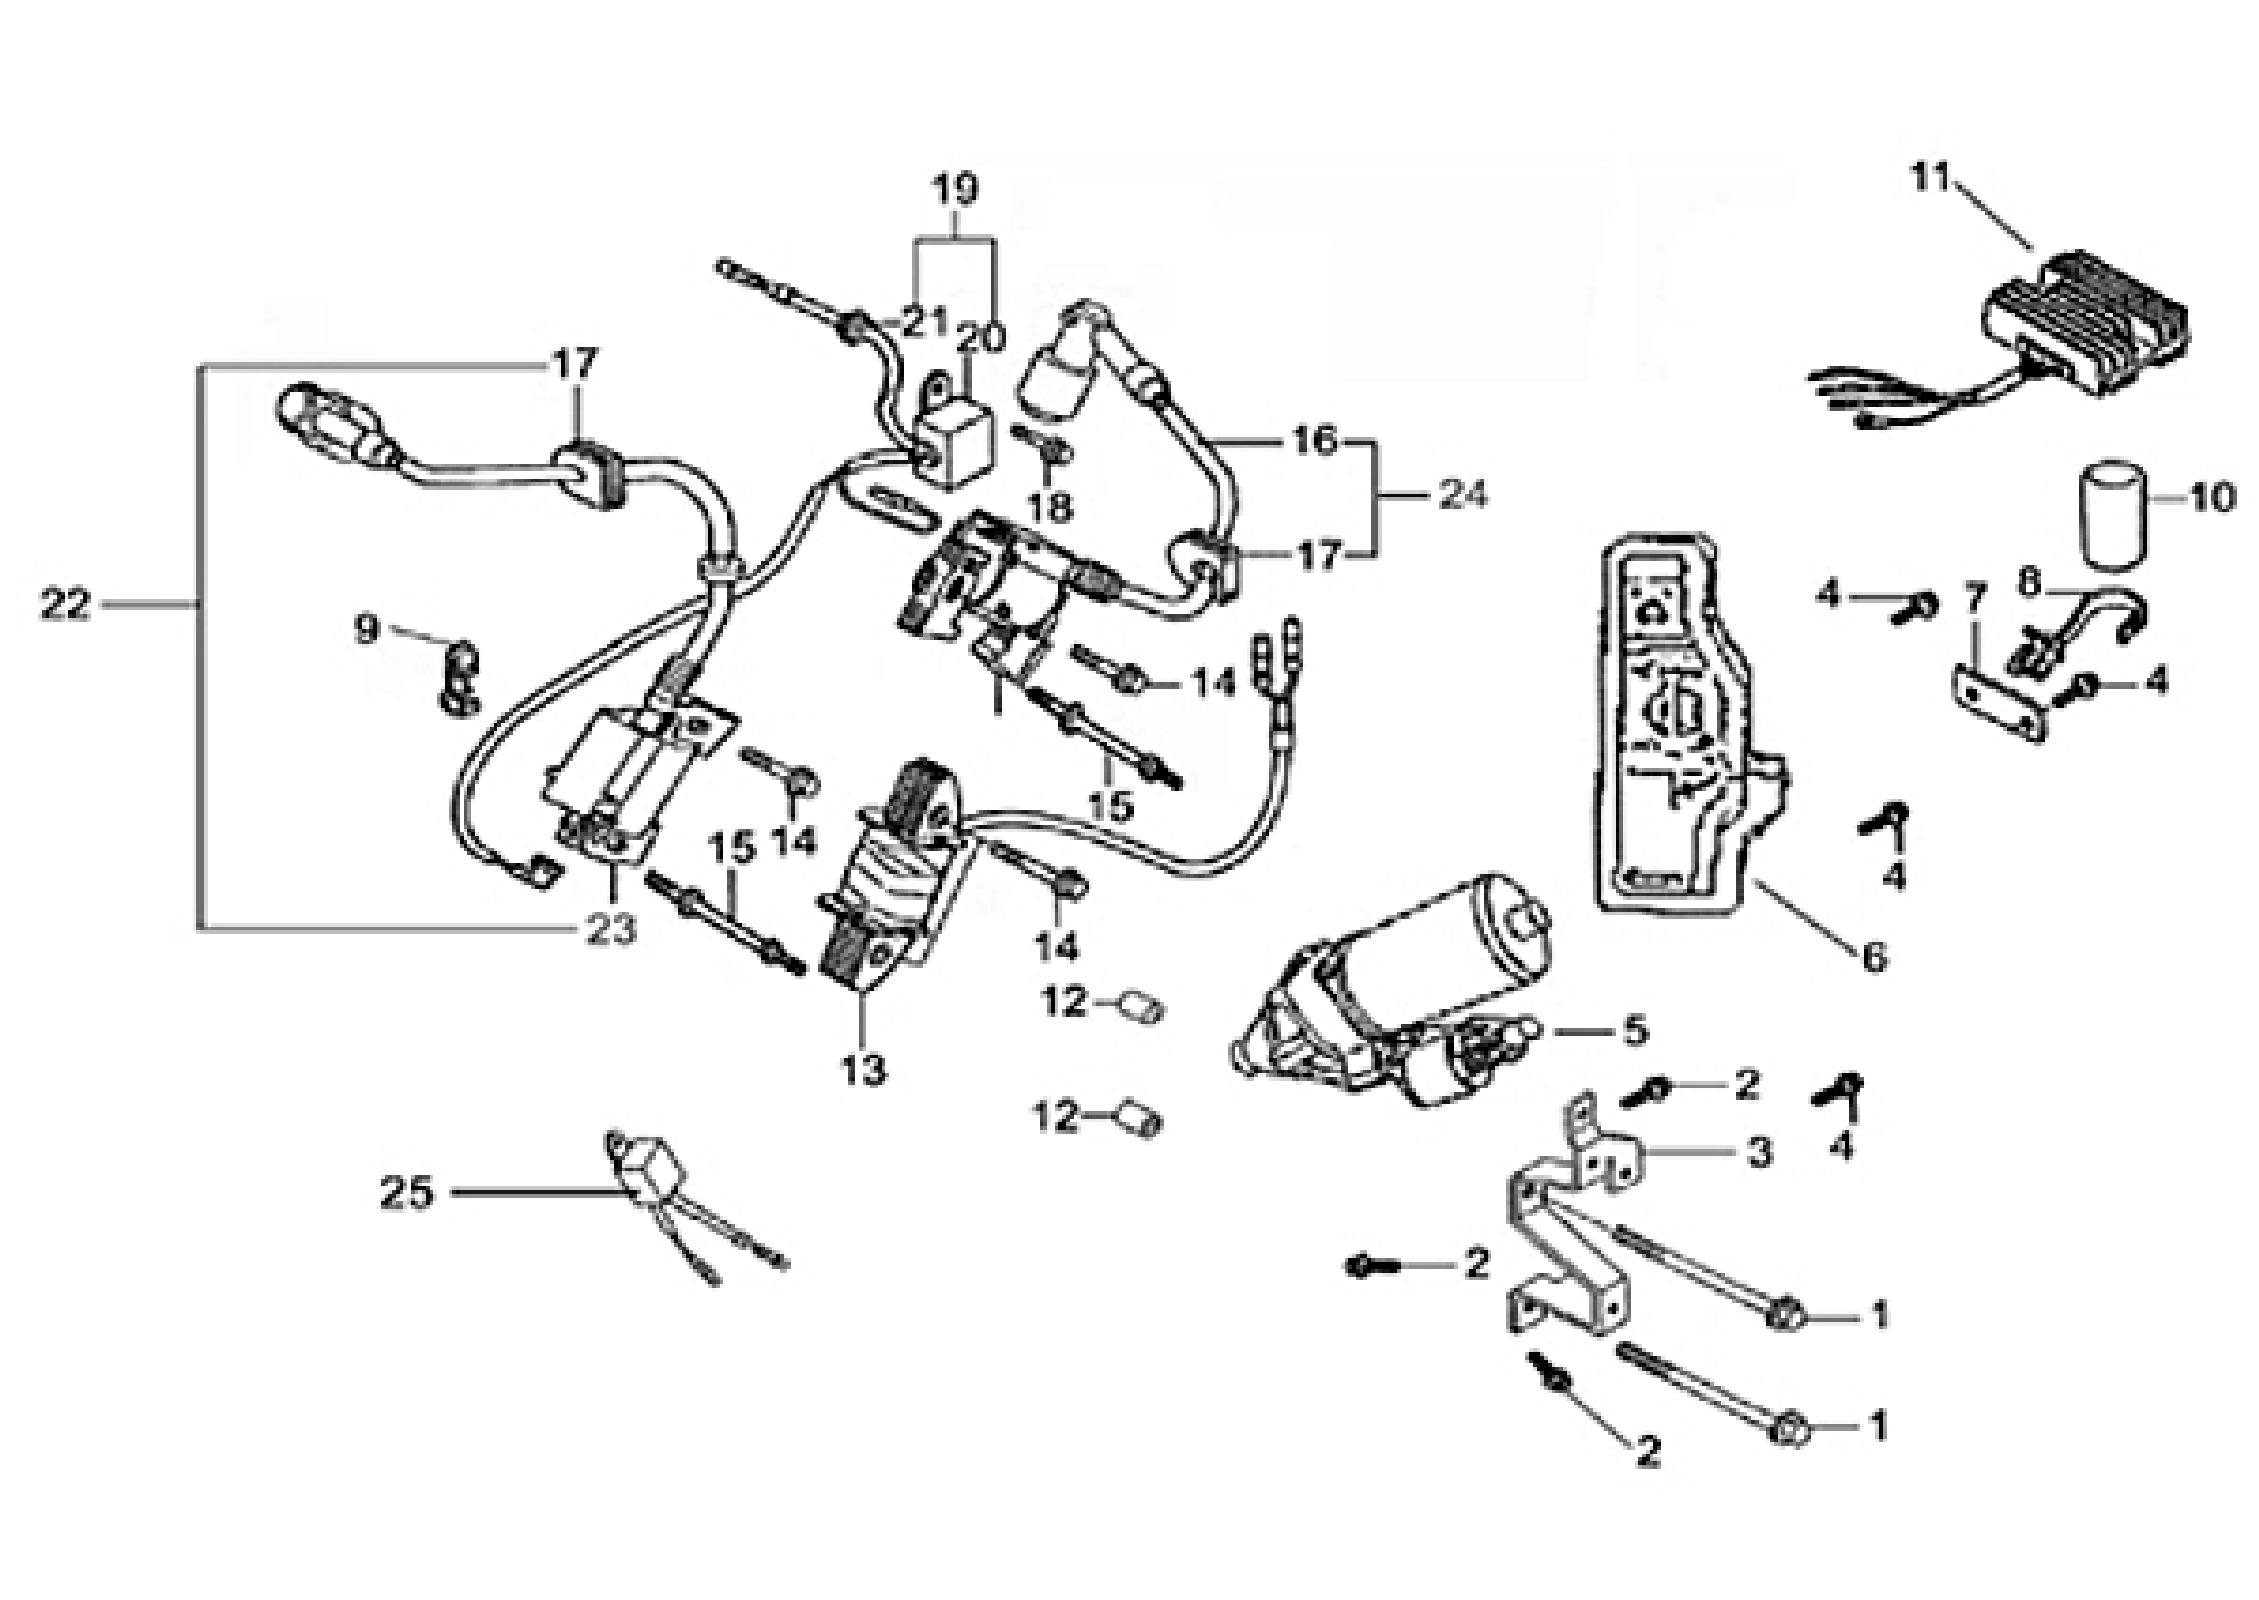 Honda Gx340 Engine Diagram, Honda, Get Free Image About